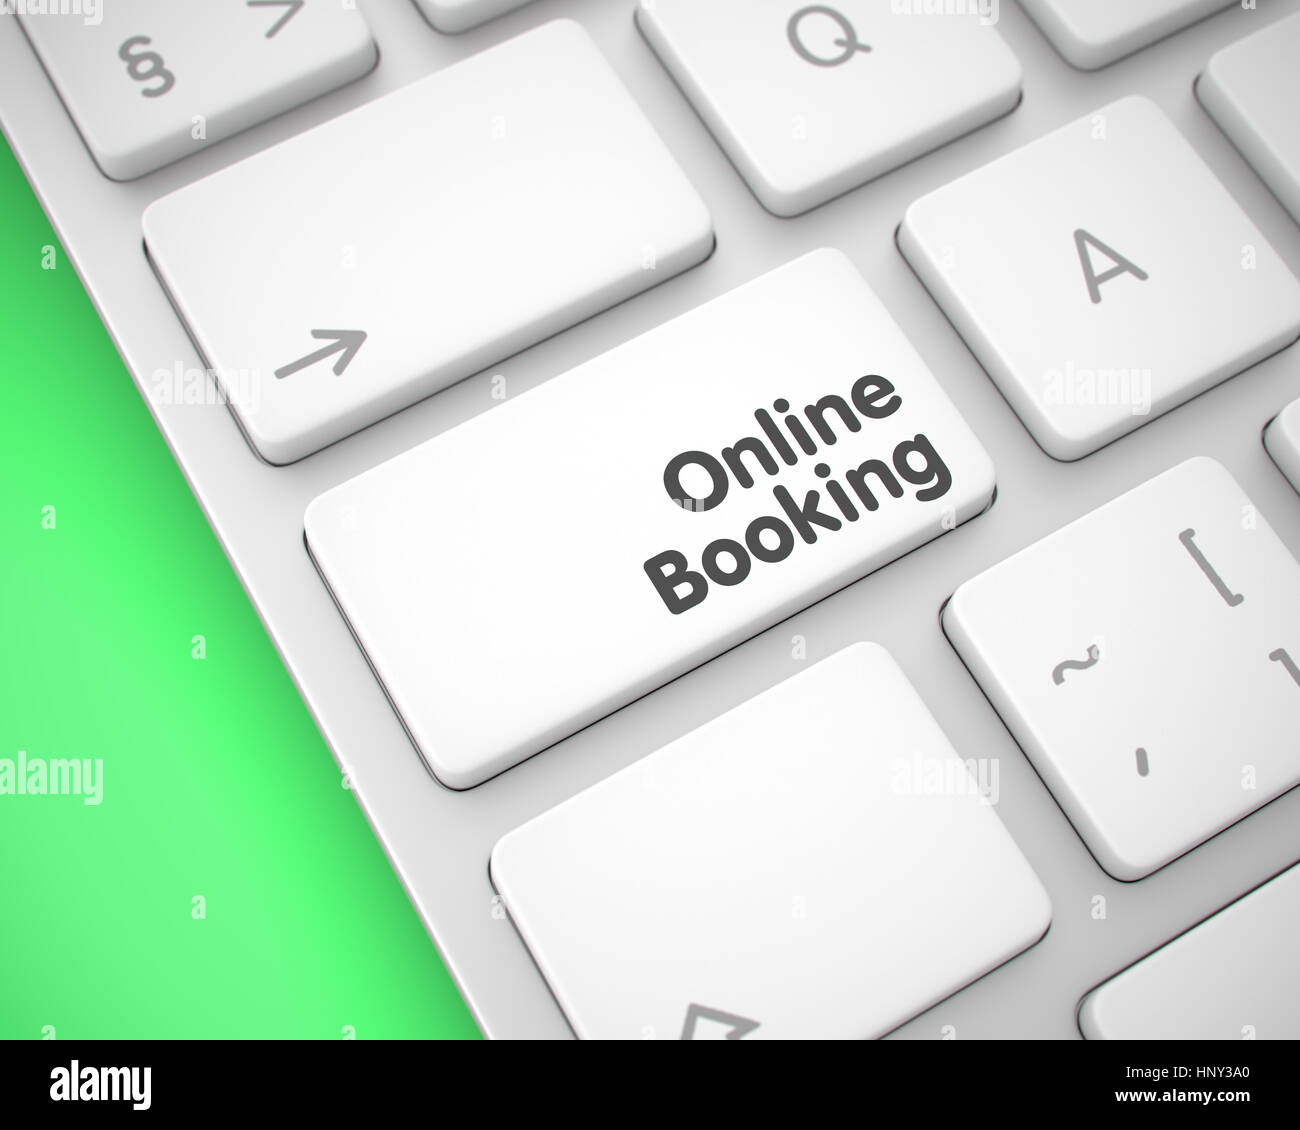 Online Booking - Text on White Keyboard Key. 3D. - Stock Image